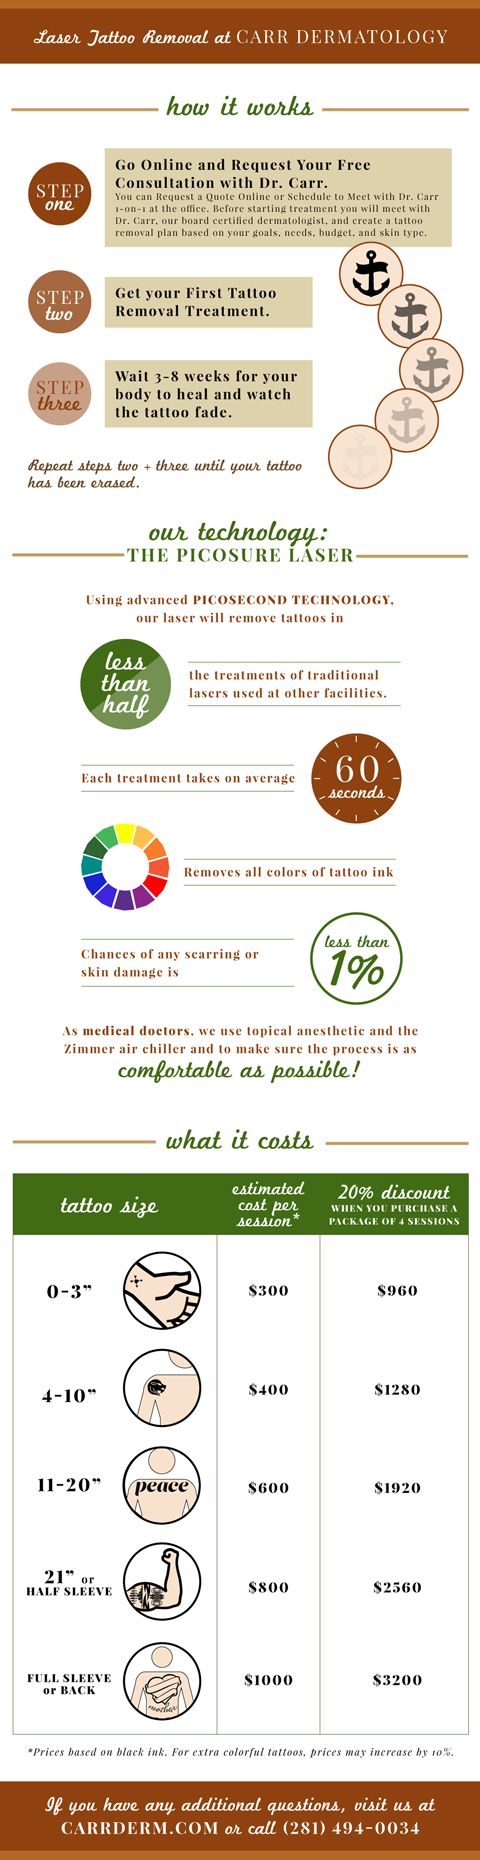 An Infographic about Laser Tattoo Removal using the Picosure laser at our dermatology clinic in Sugar Land, TX